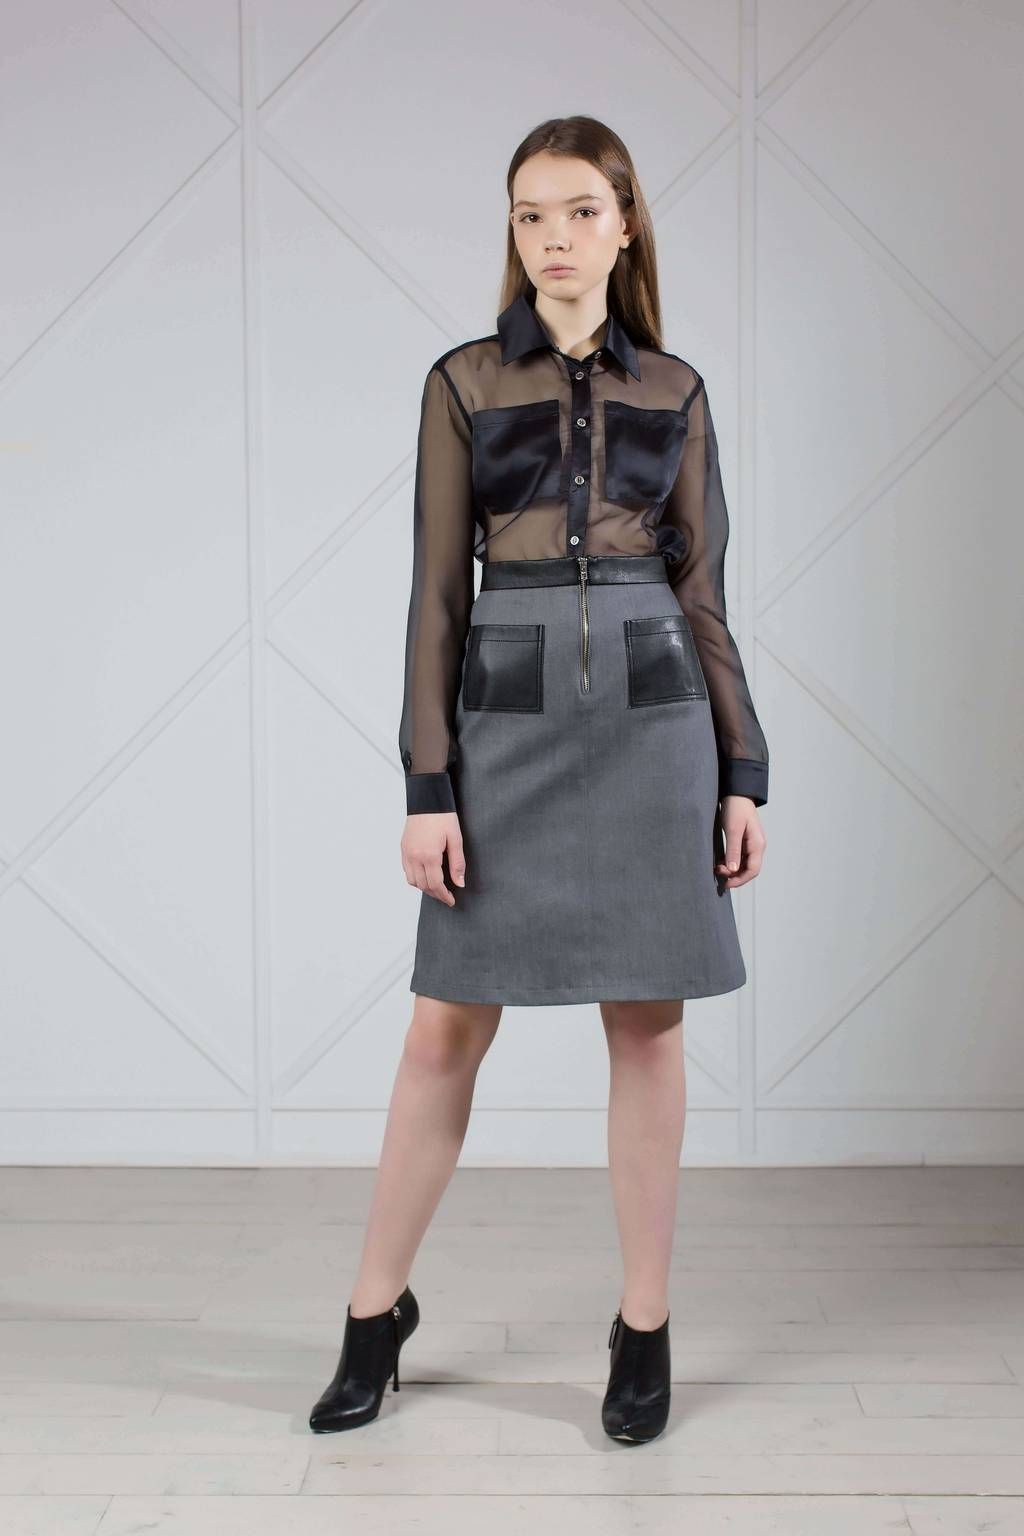 Gray denim A-line skirt with leather